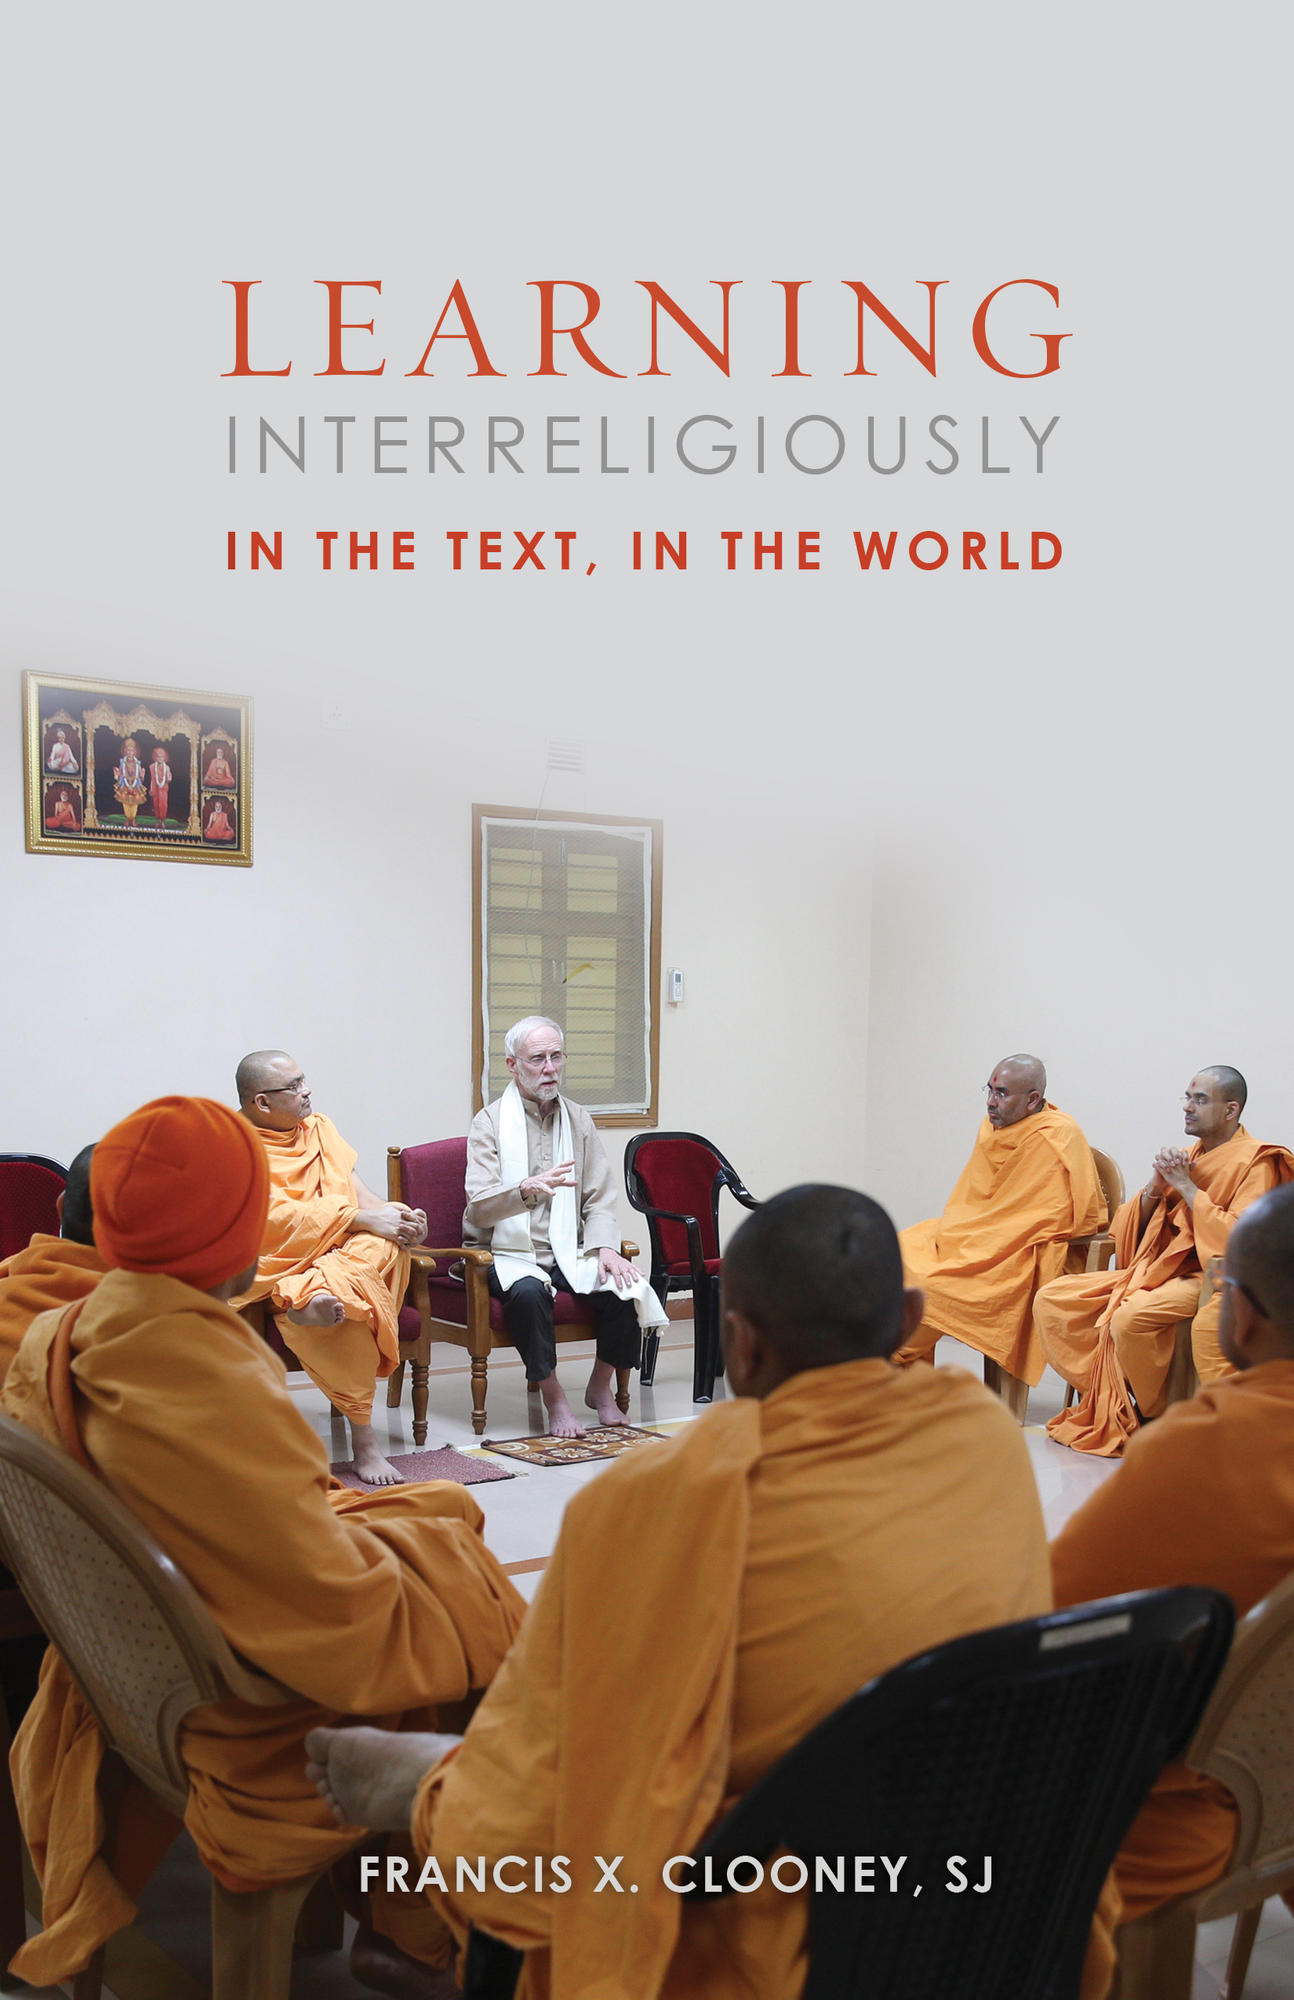 Learning Interreligiously: In the Text, In the World